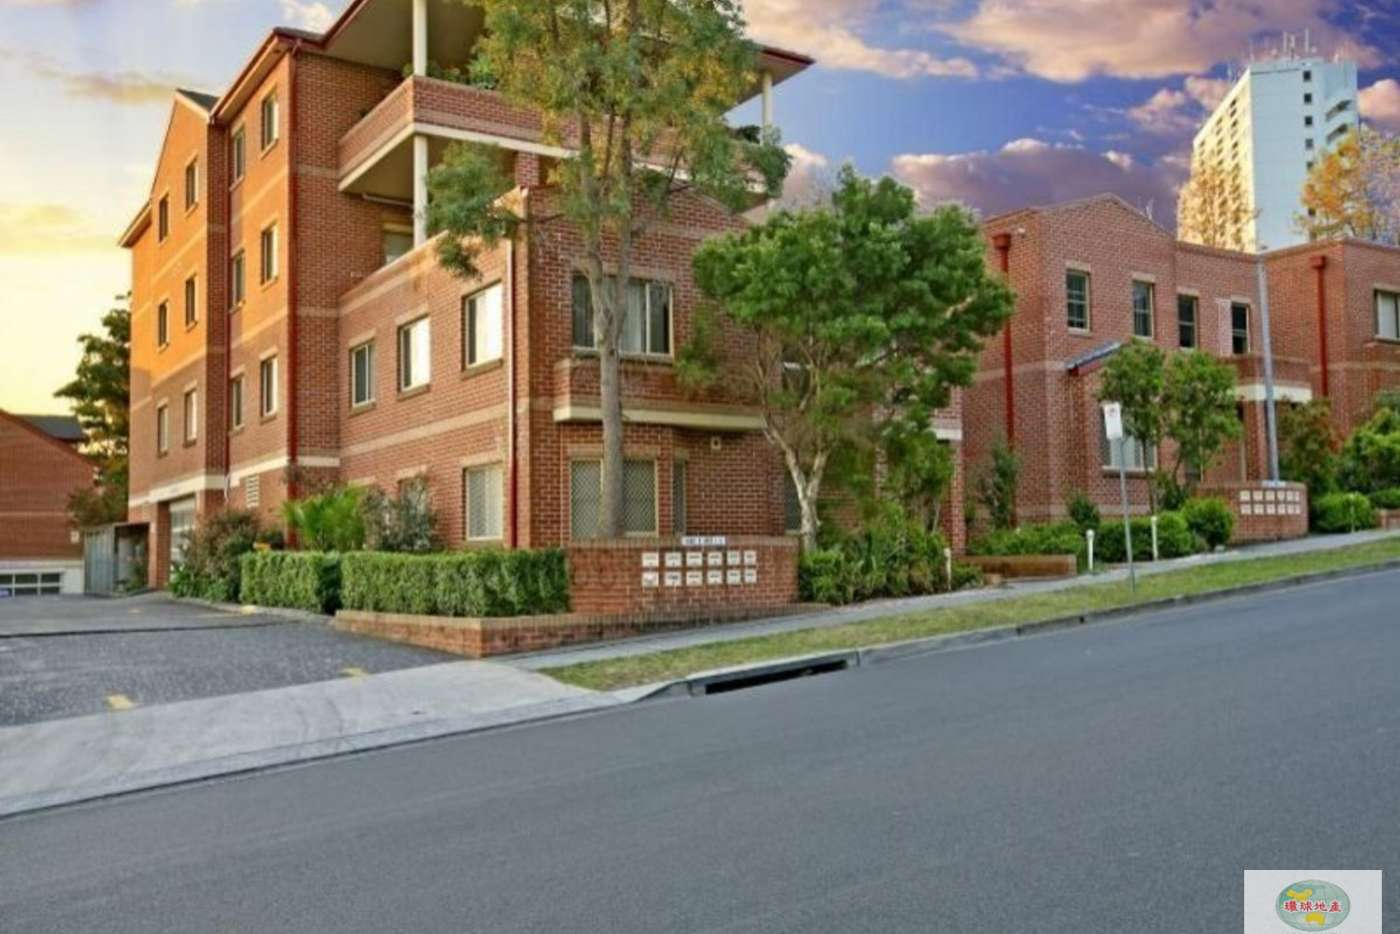 Main view of Homely apartment listing, C25/88 Marsden Street, Parramatta NSW 2150